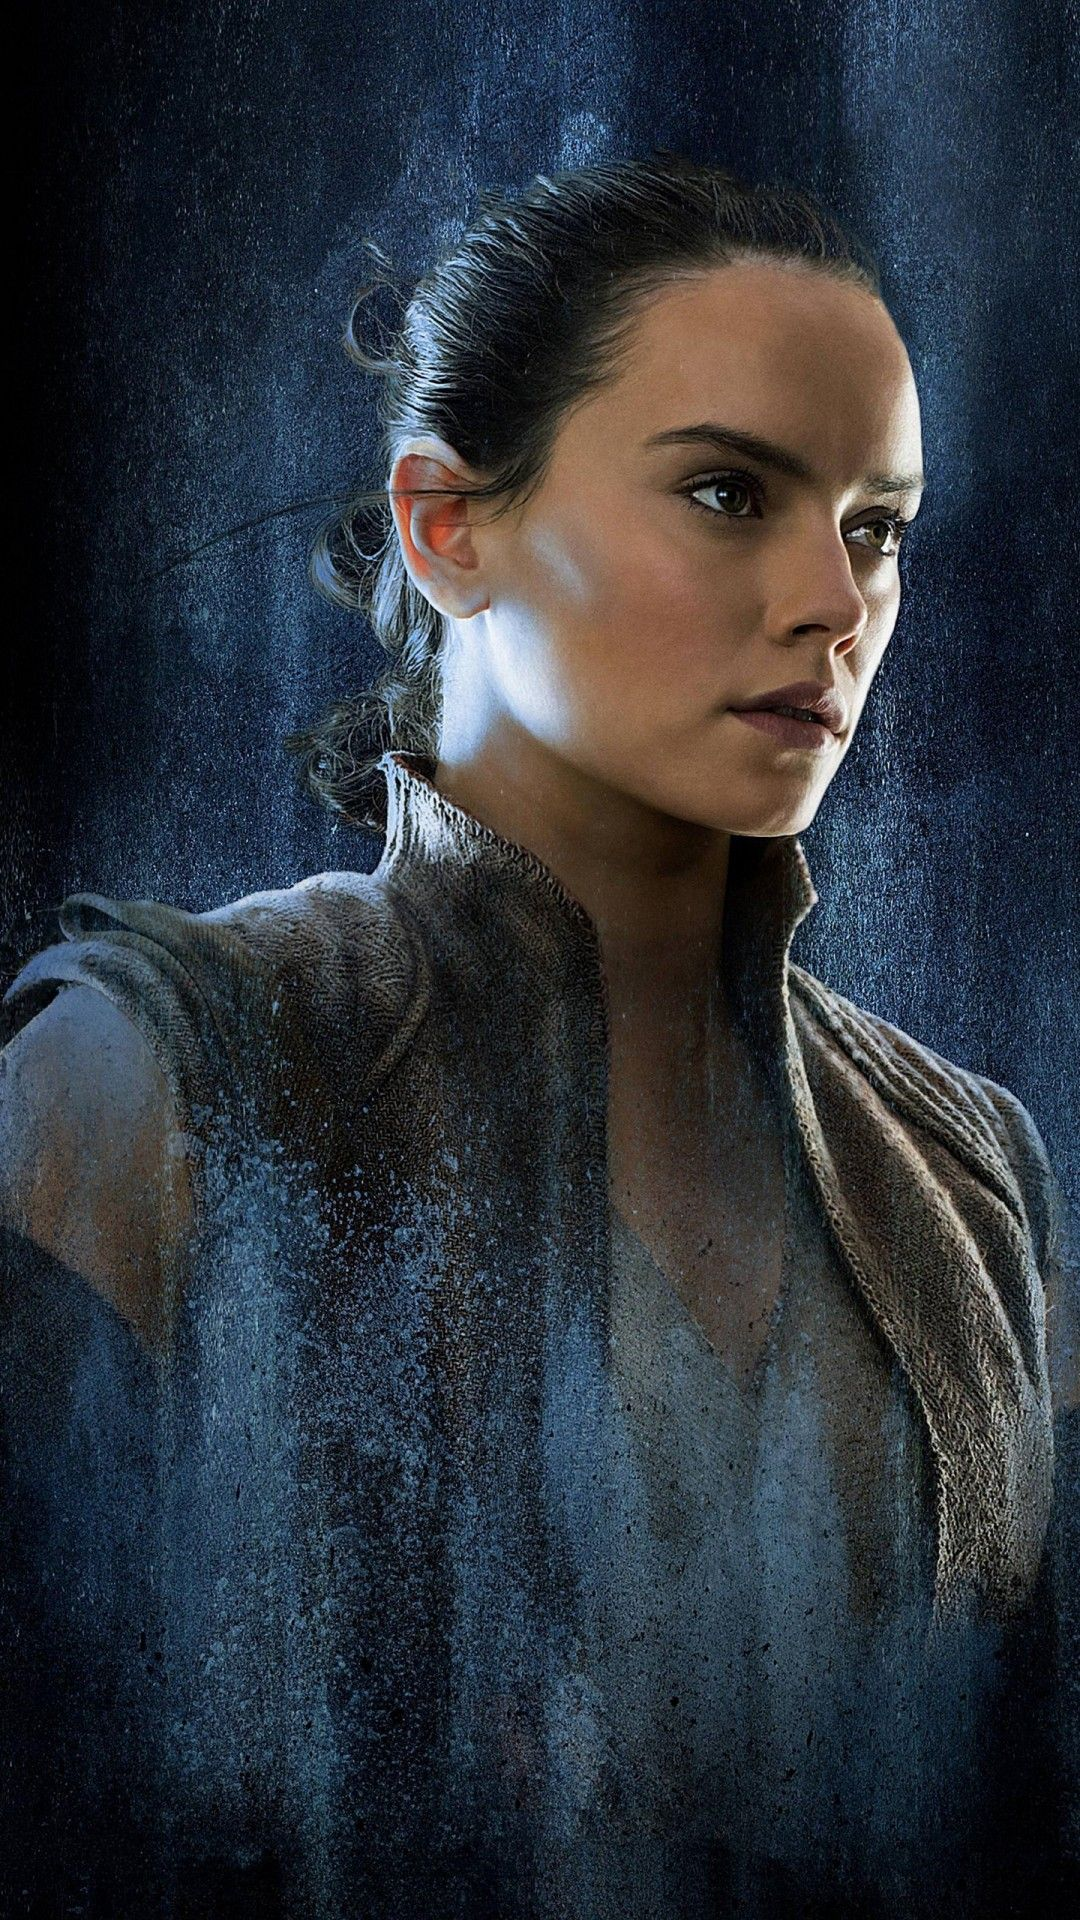 1080x1920 Daisy Ridley Rey Star Wars The Last Jedi Wallpapers | HD Wallpapers ...